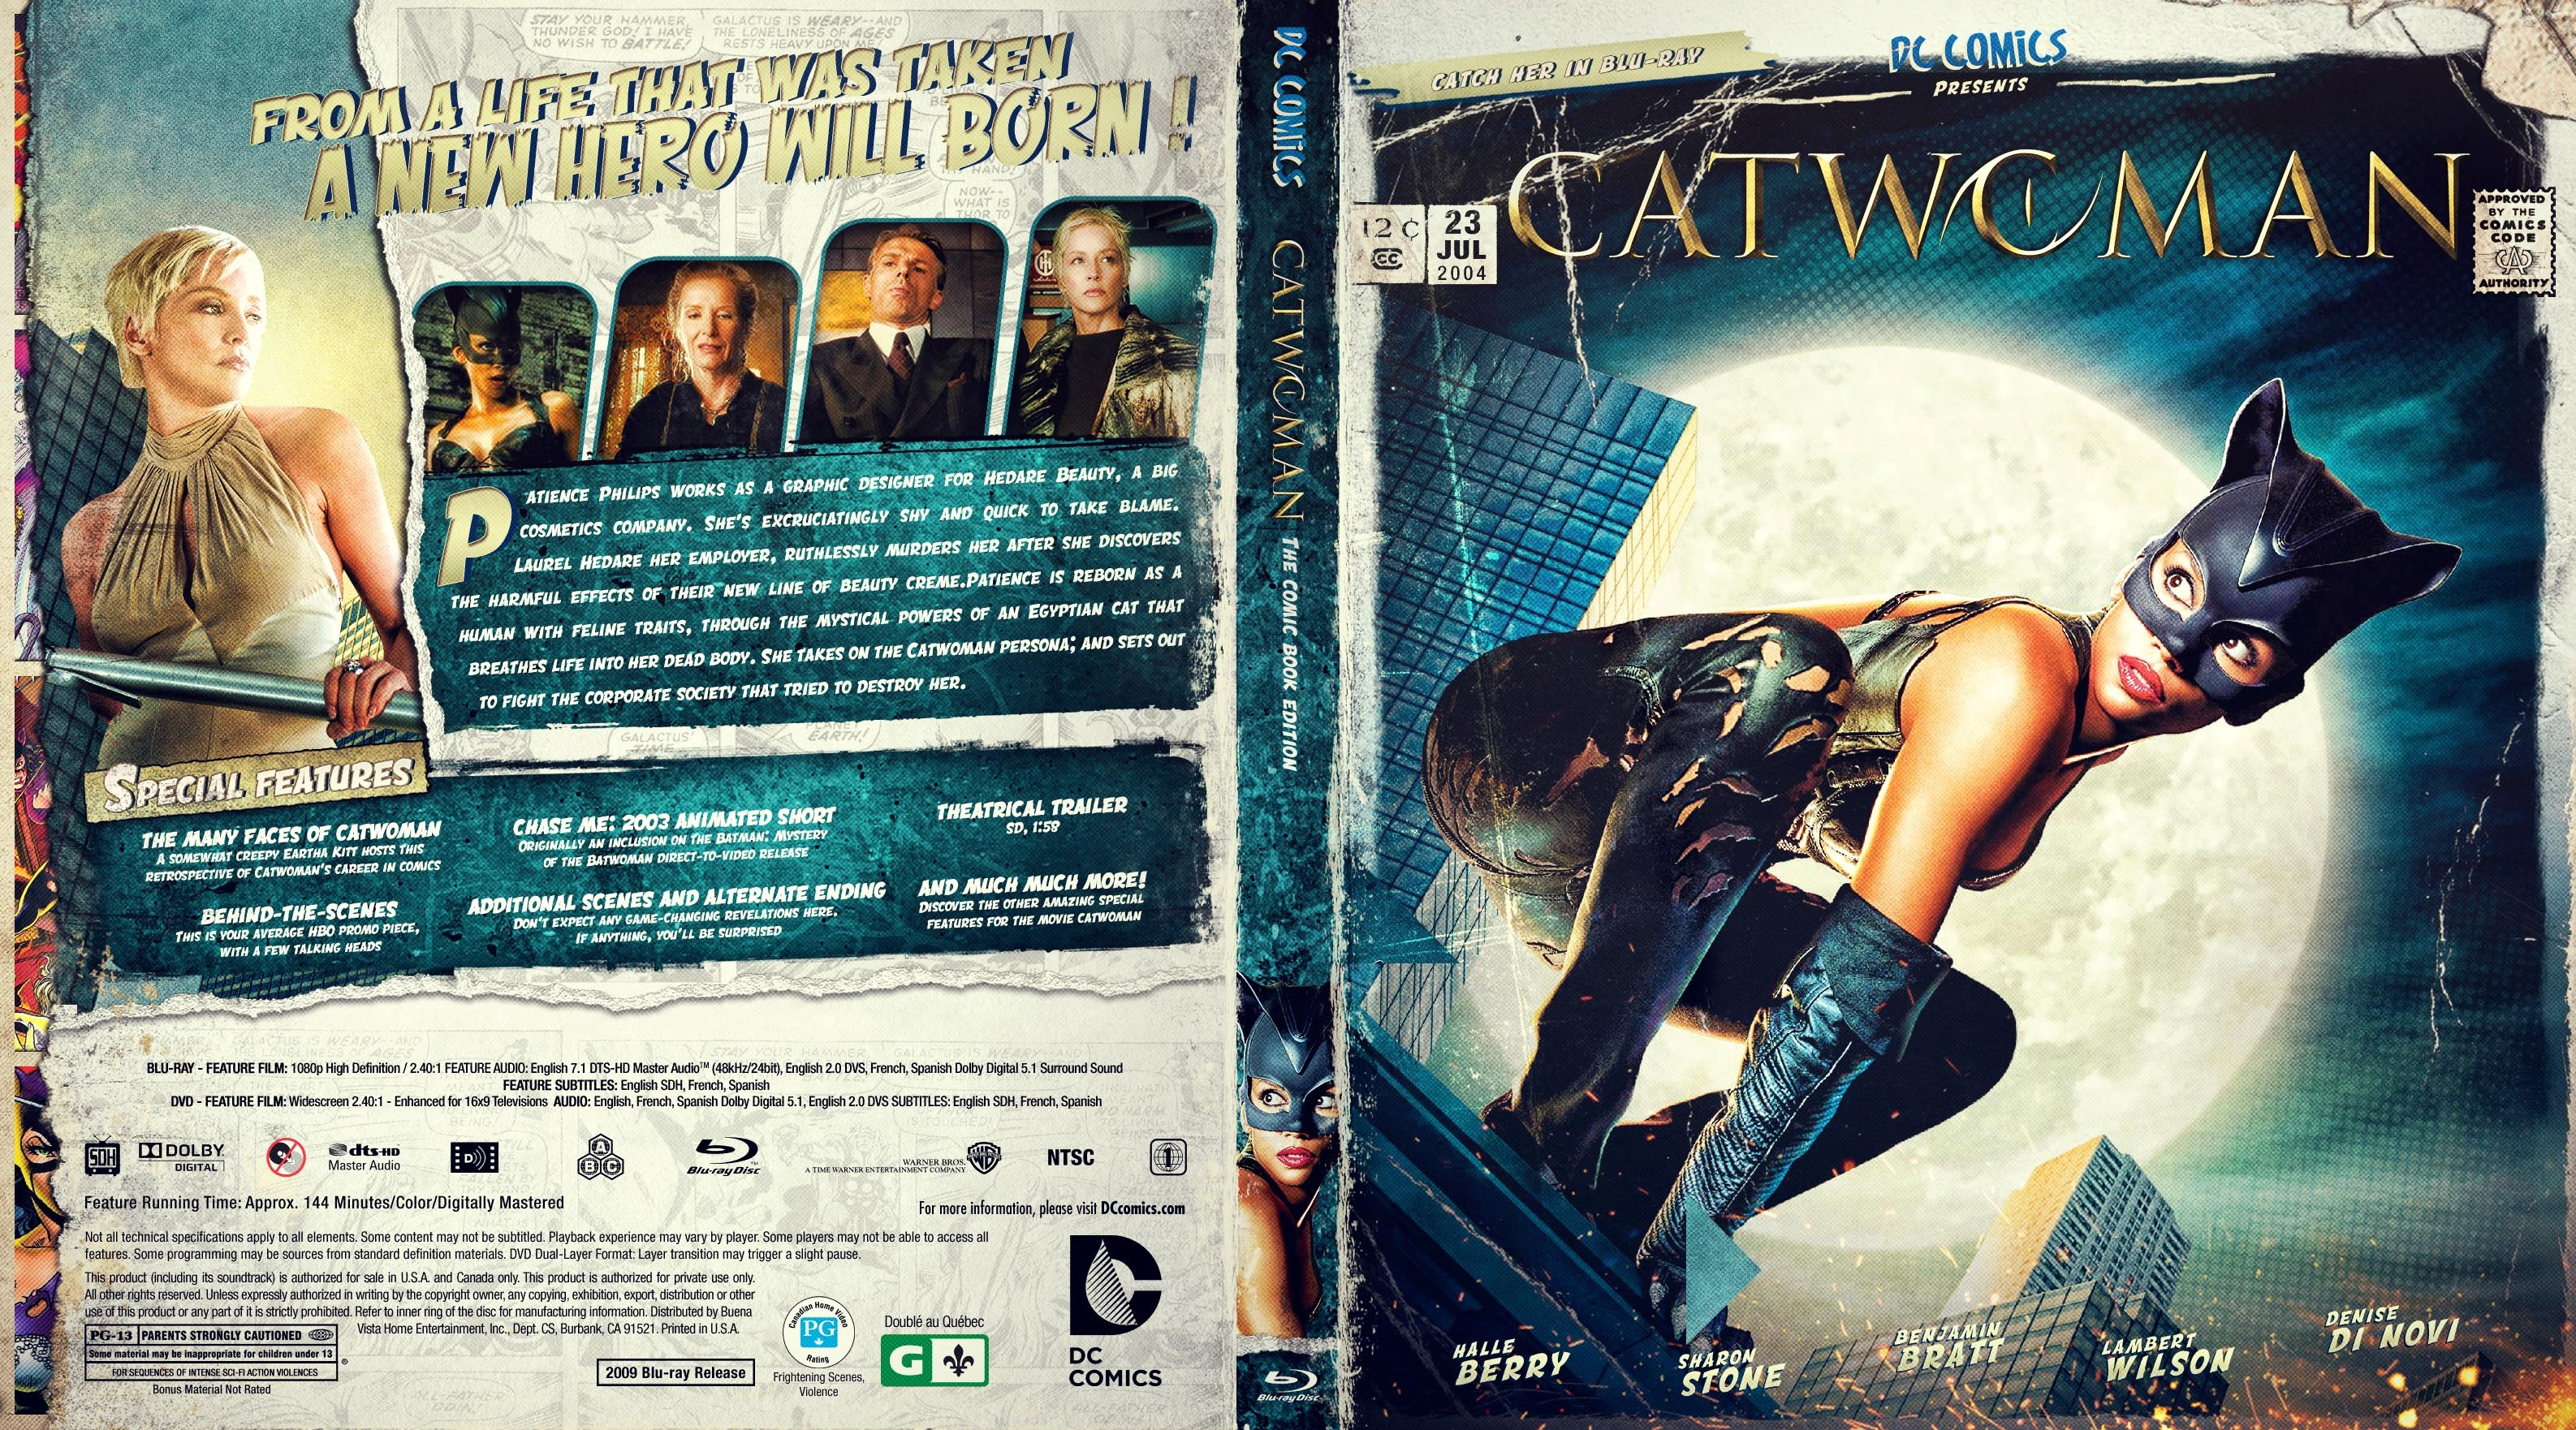 Catwoman Full Movie Online Free